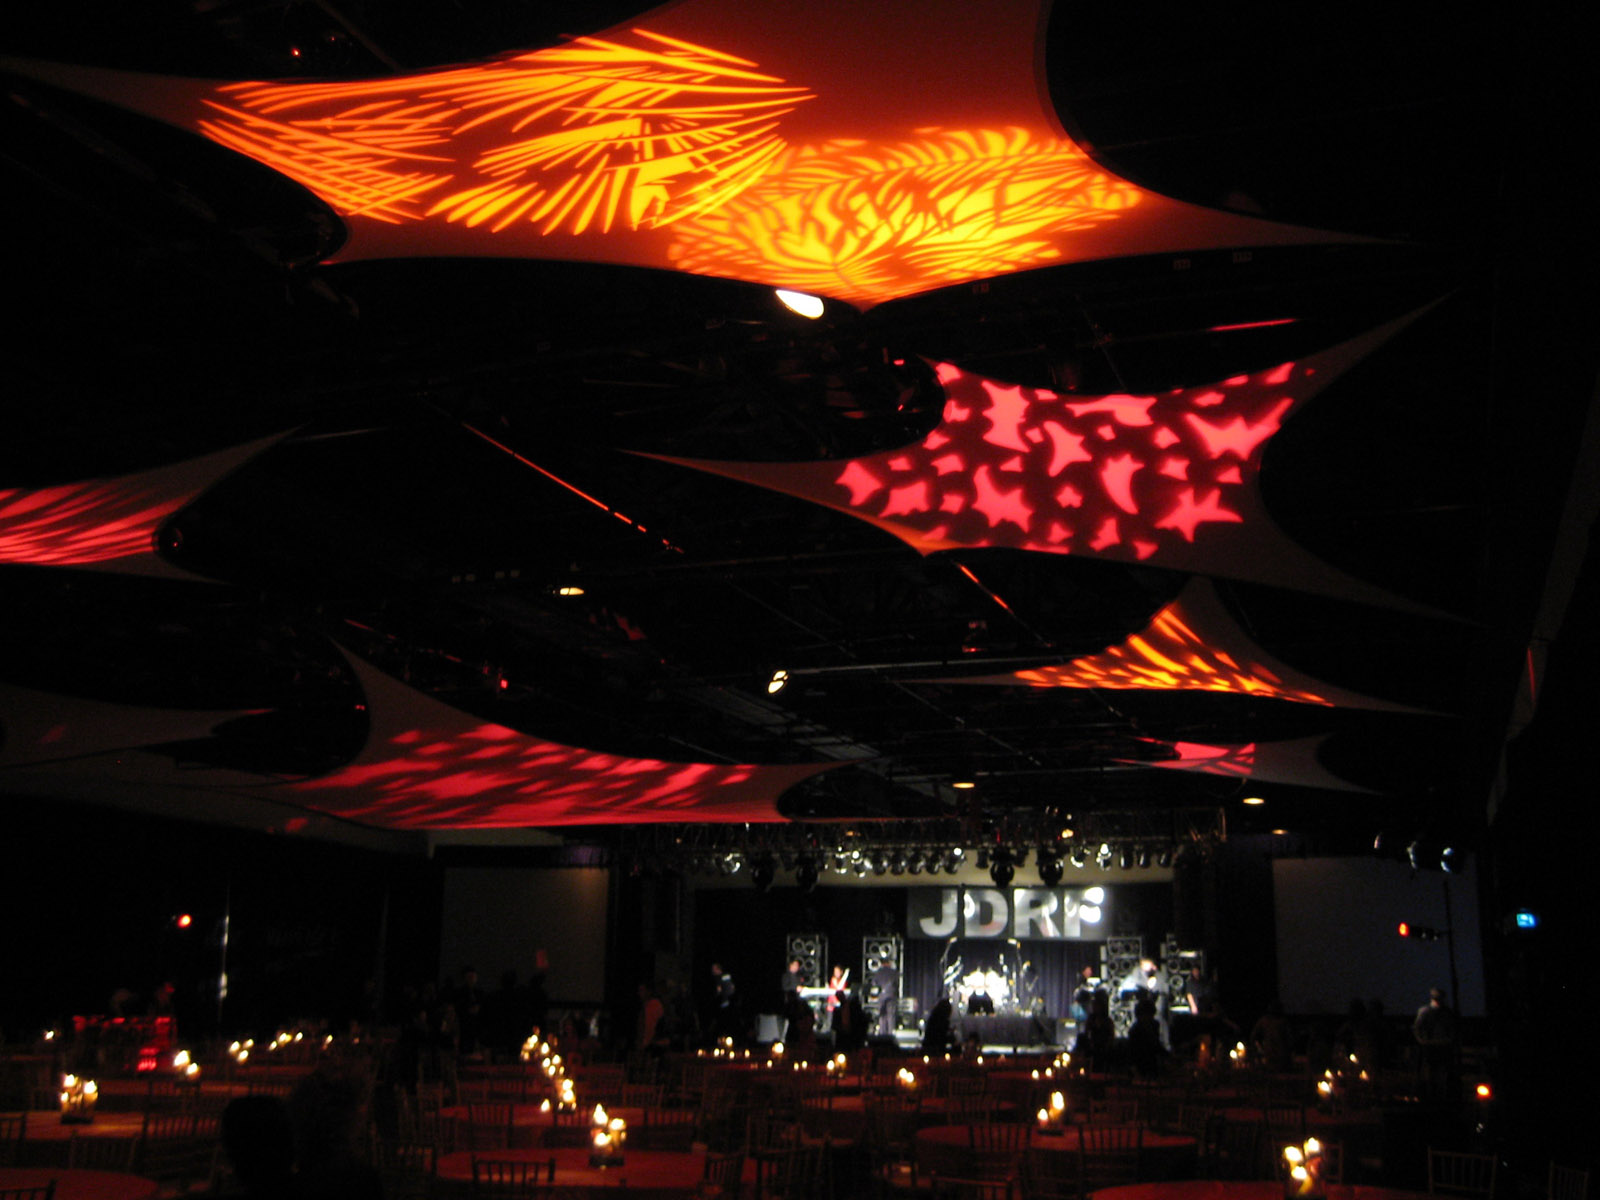 ceiling decor with stretch shapes